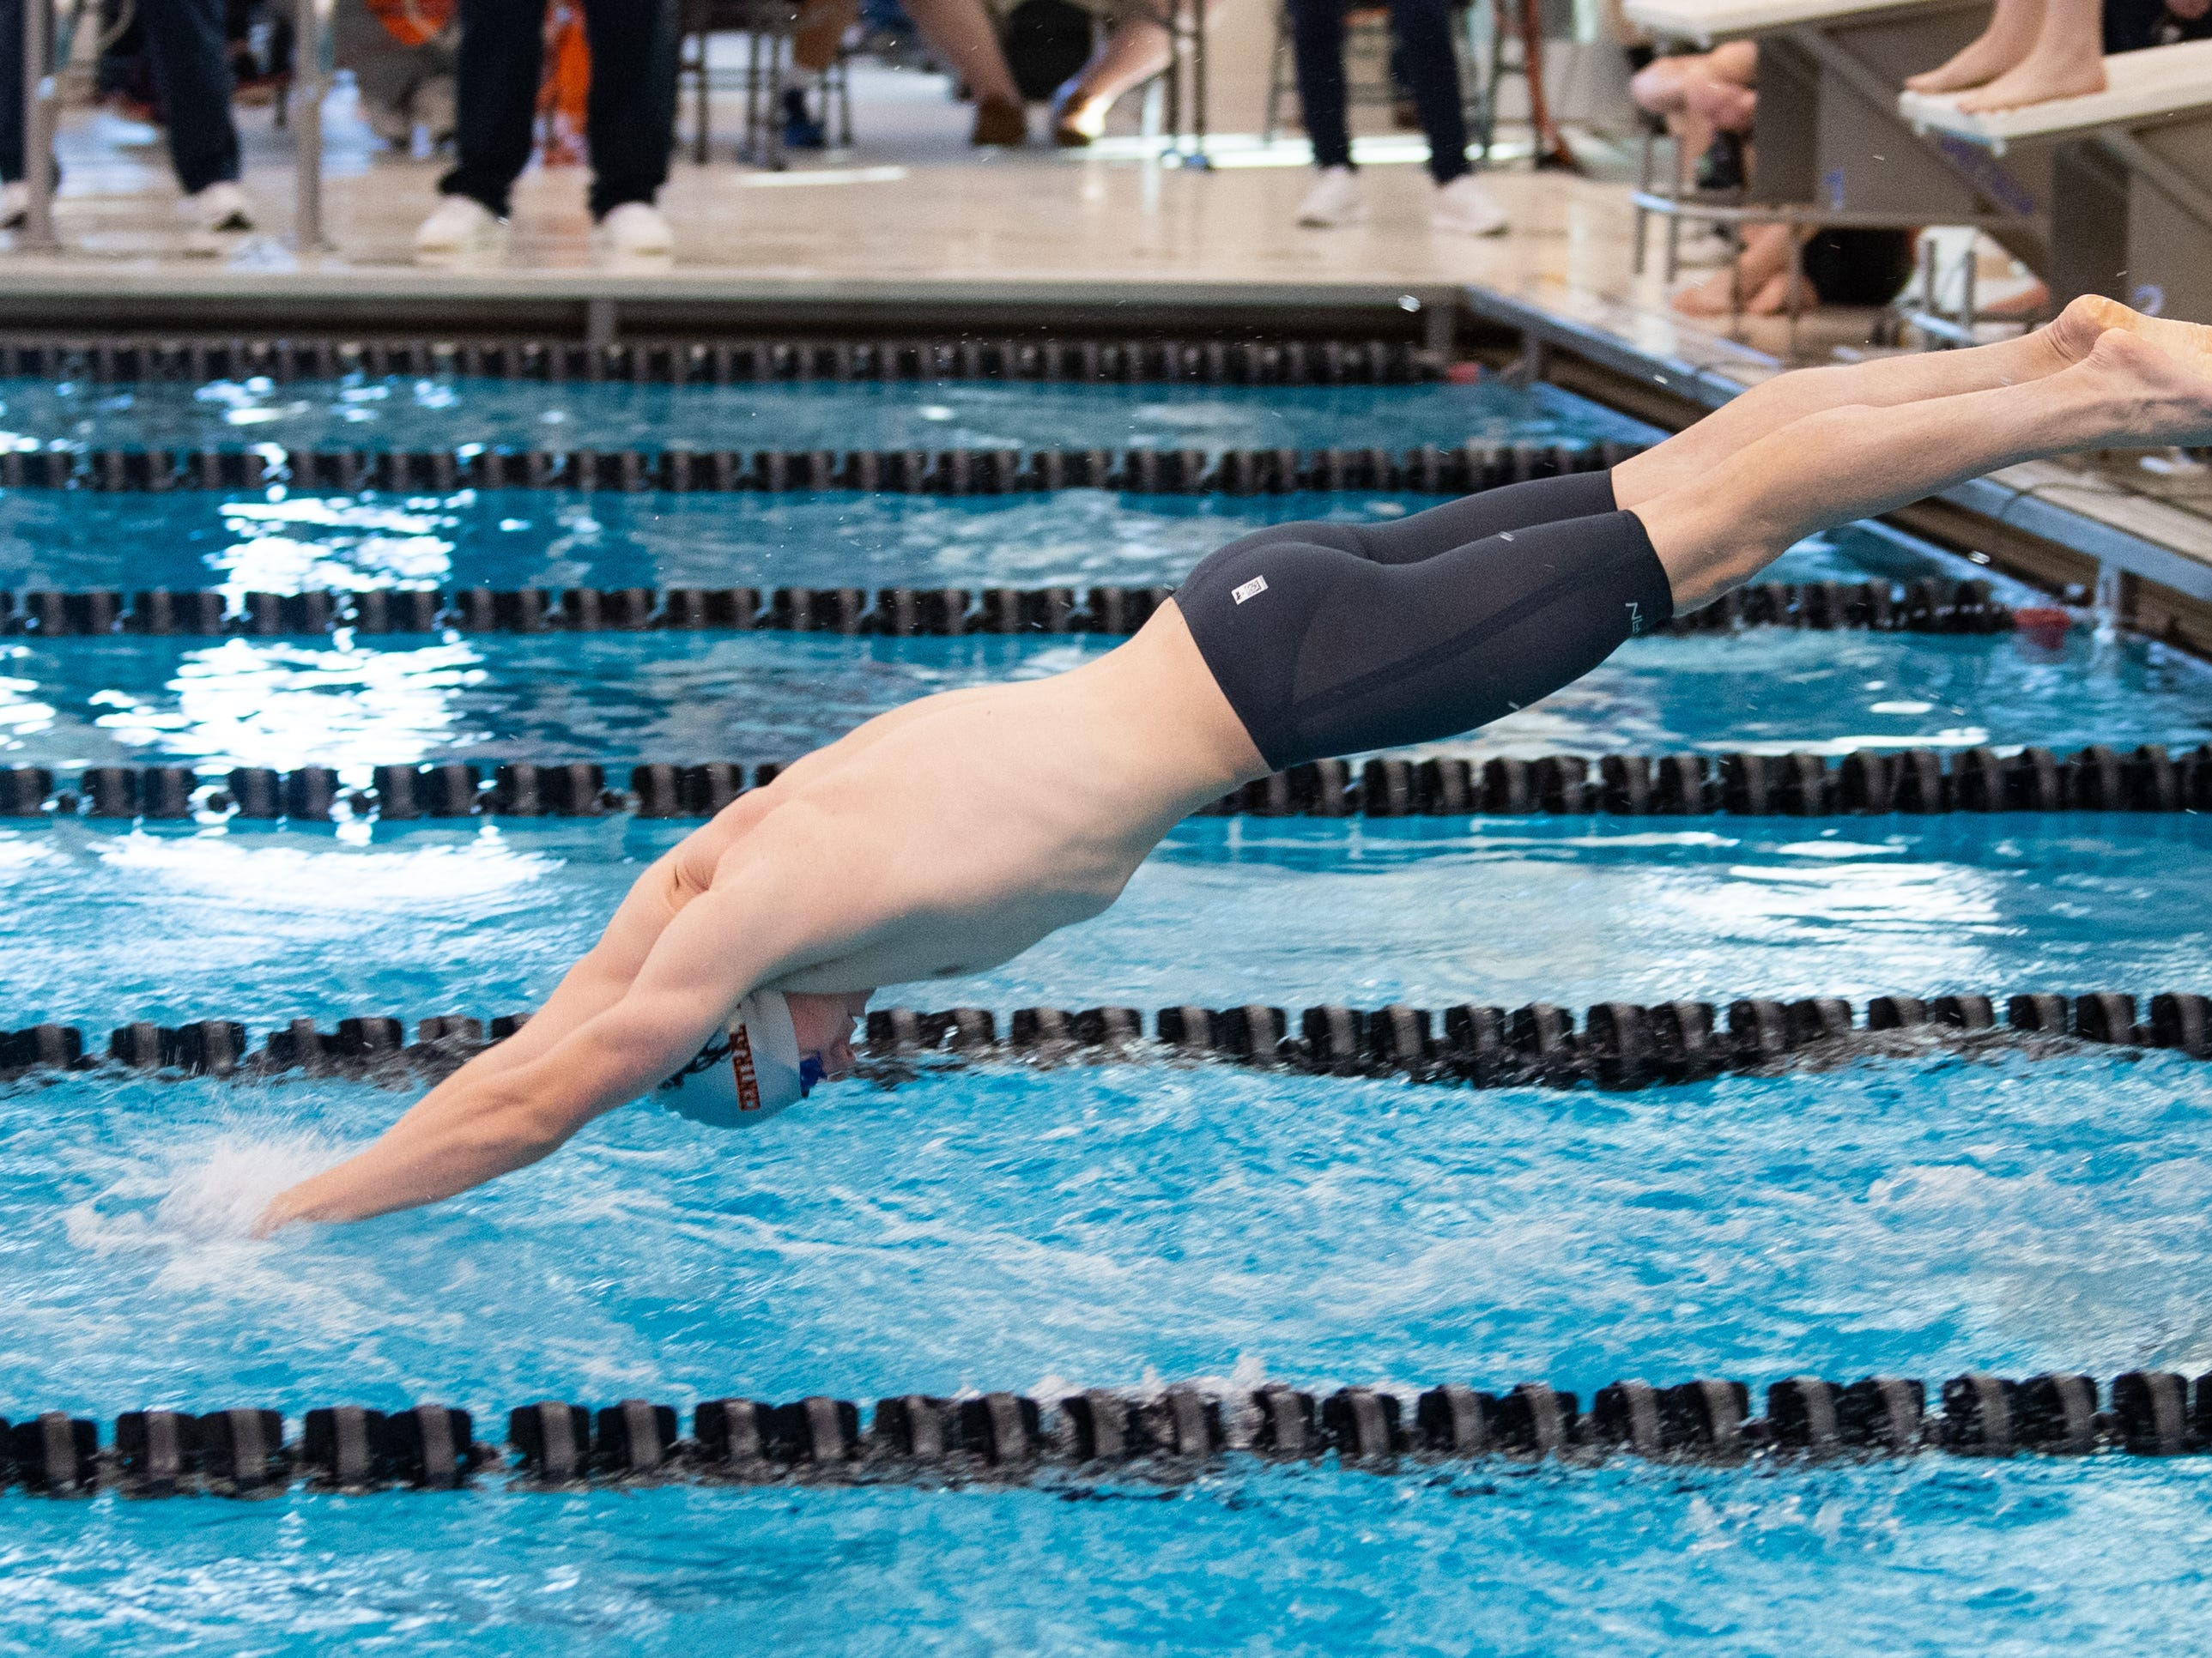 Central York's Nathan Dundas dives into the water during the Boys 400 Yard Freestyle Relay at the 2019 YAIAA Swimming and Diving Championships at Central York High School, February 9, 2019.